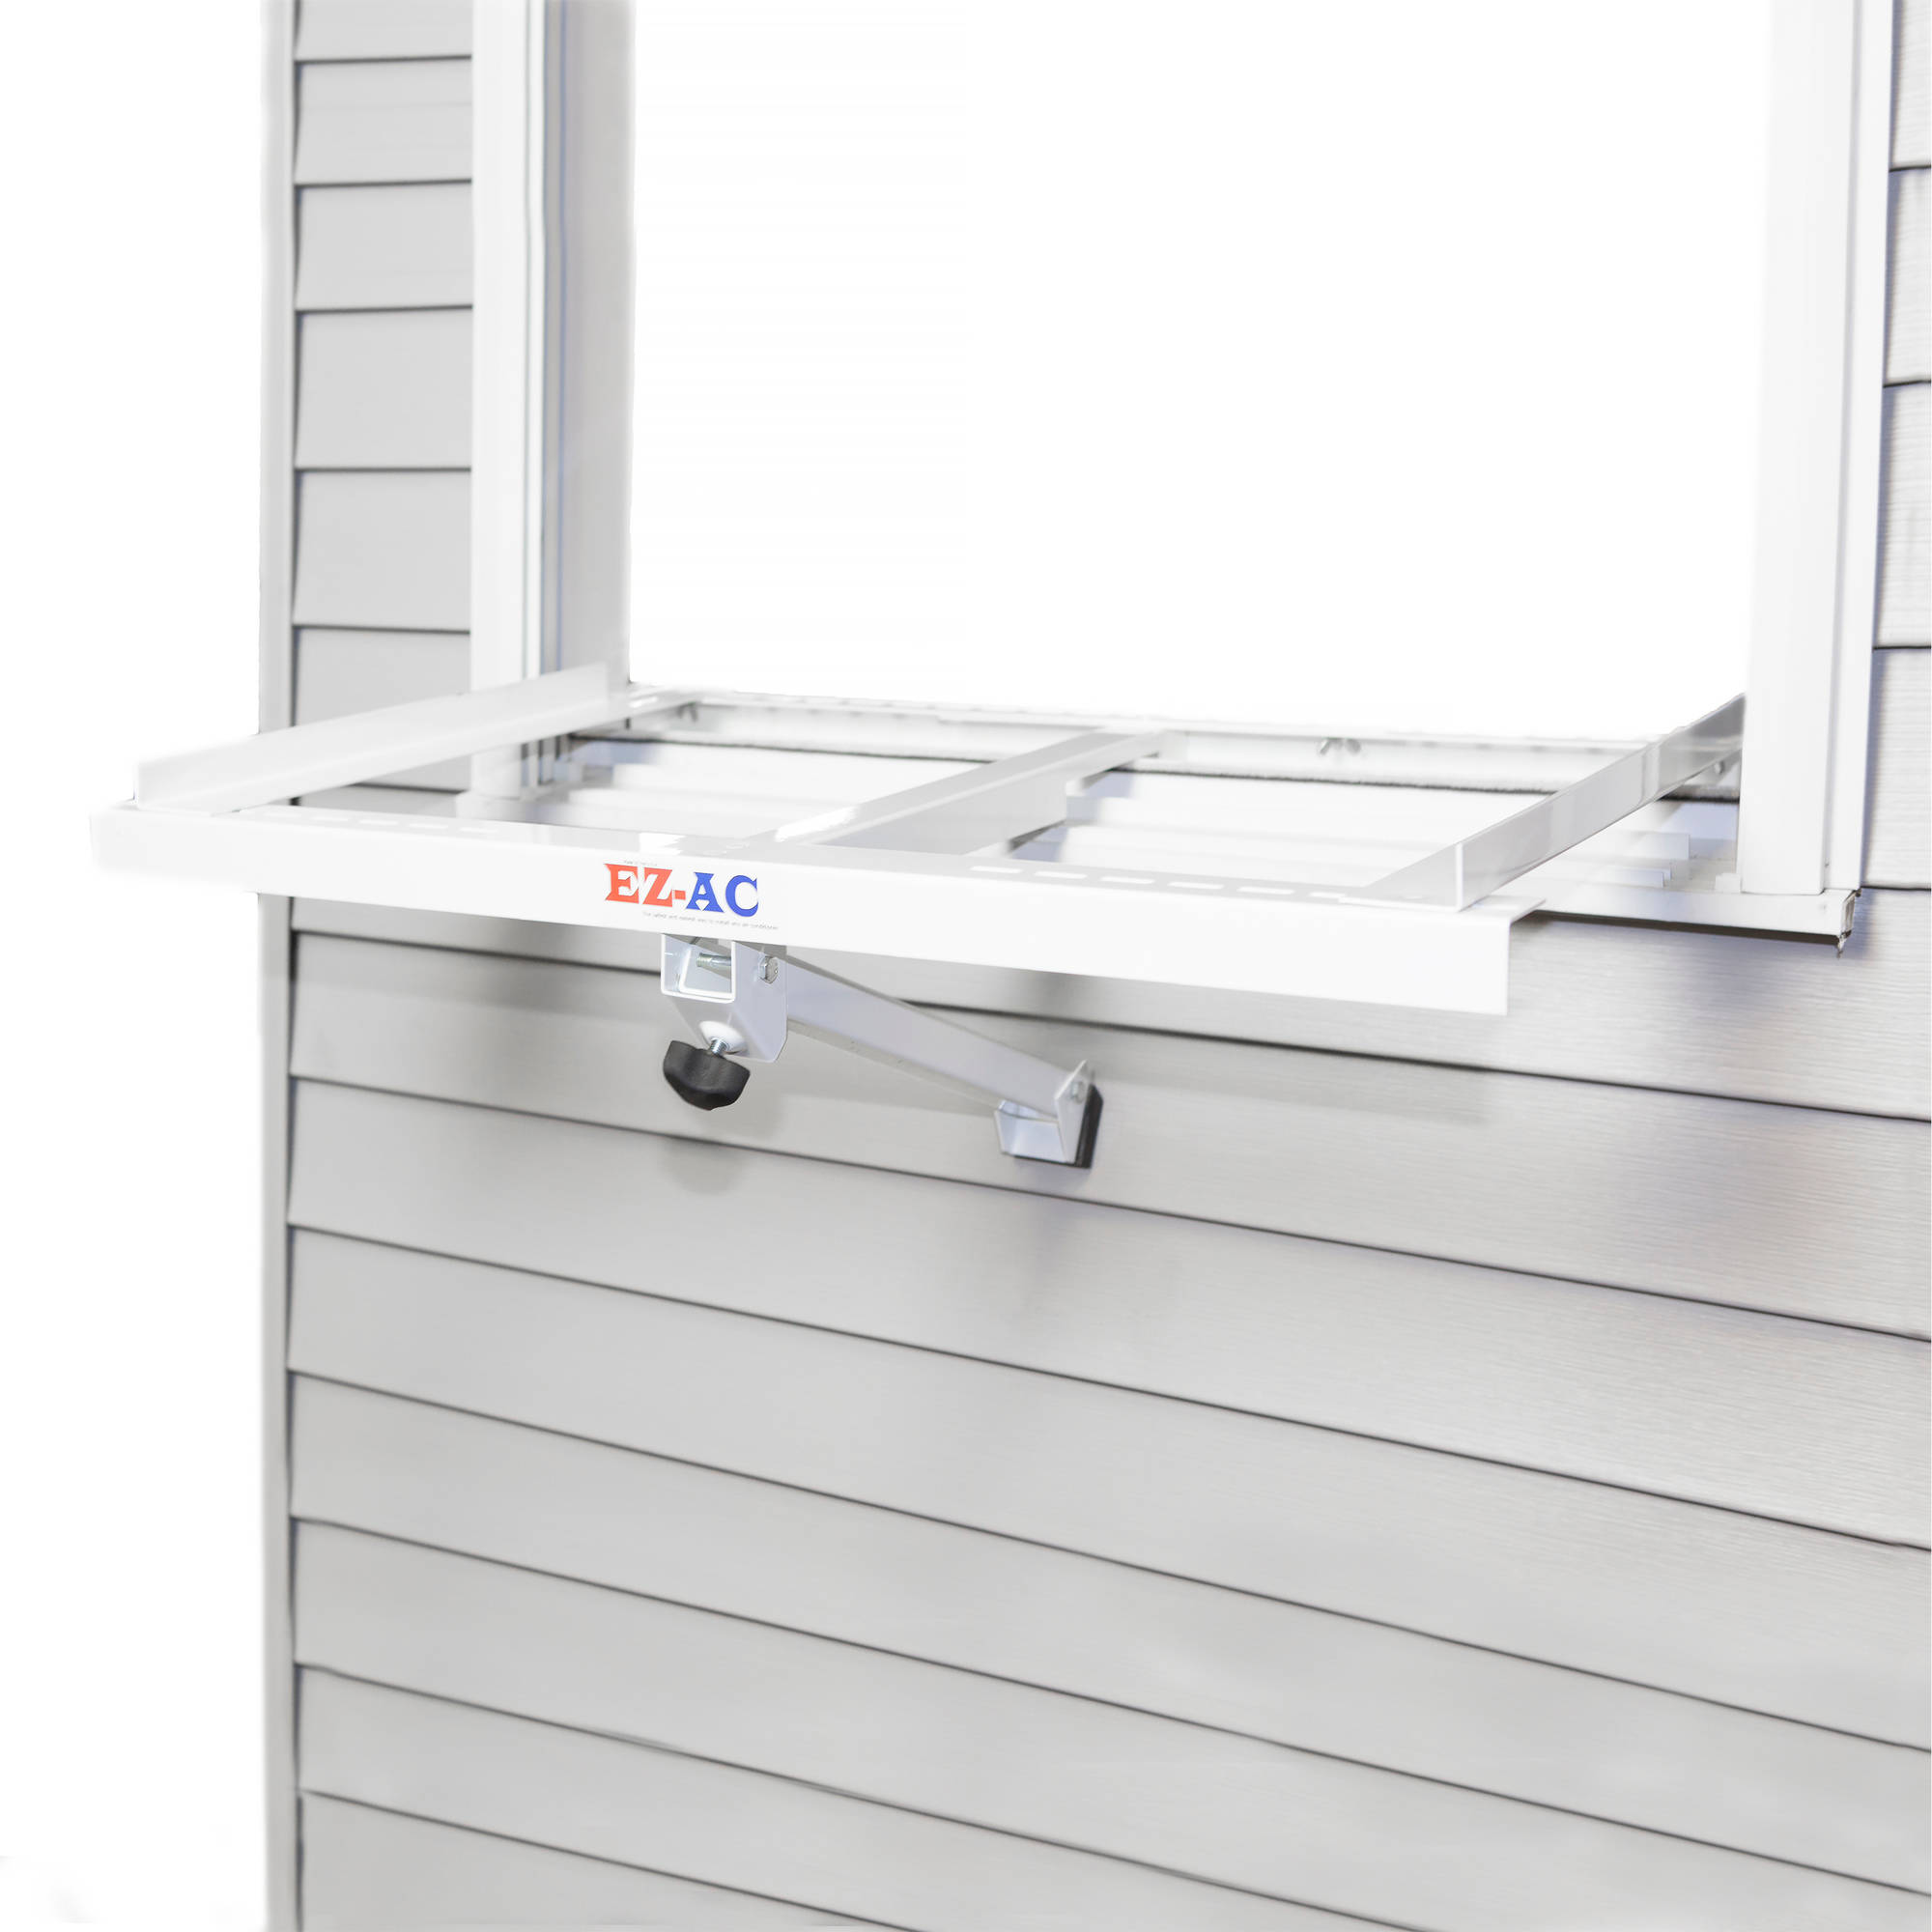 EZ-AC Air Conditioner Support Bracket - Walmart.com